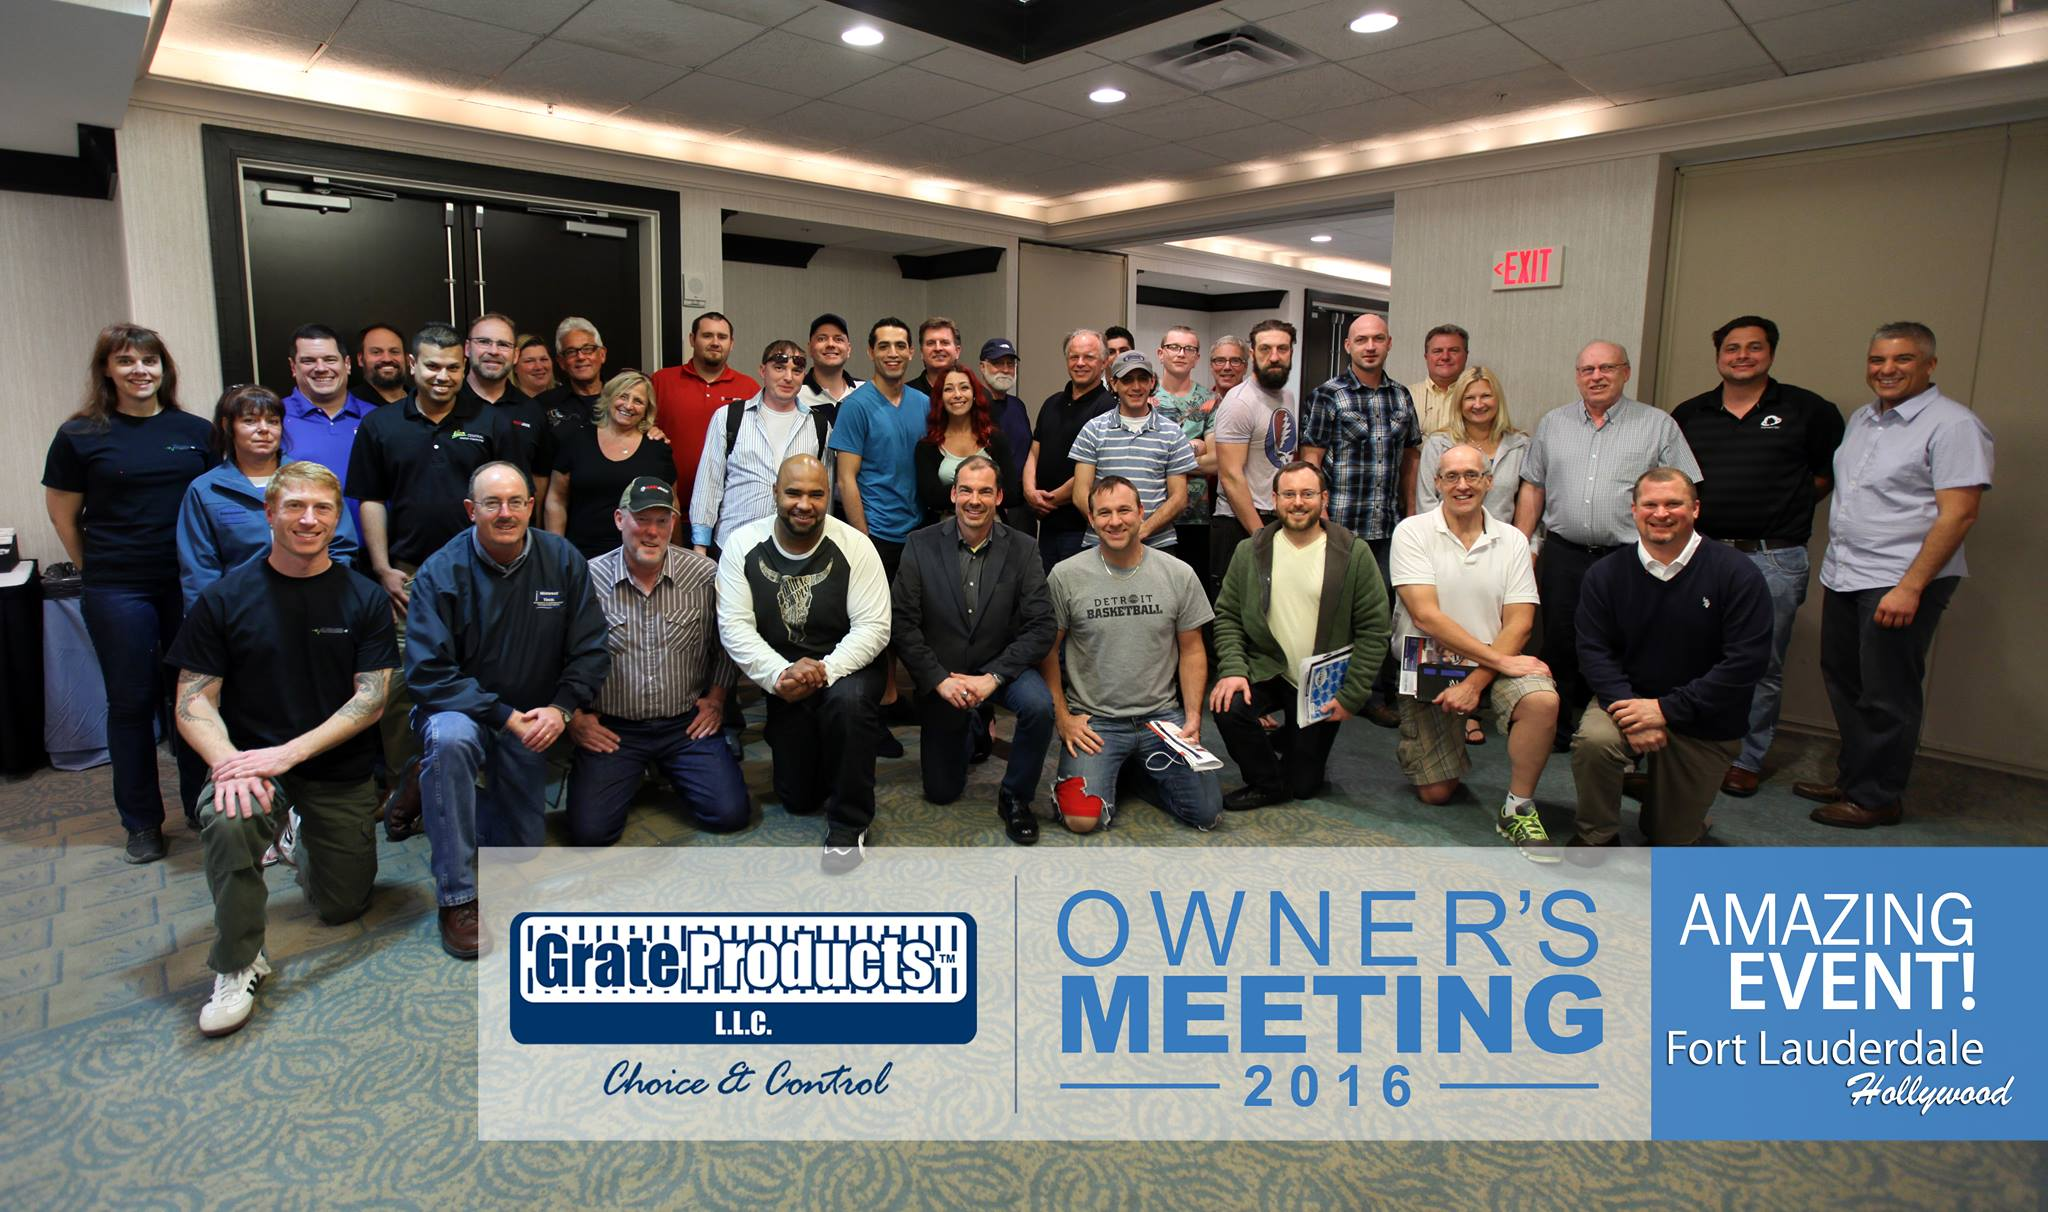 Grate Products Owners Meeting 2016 in Holywood, FL